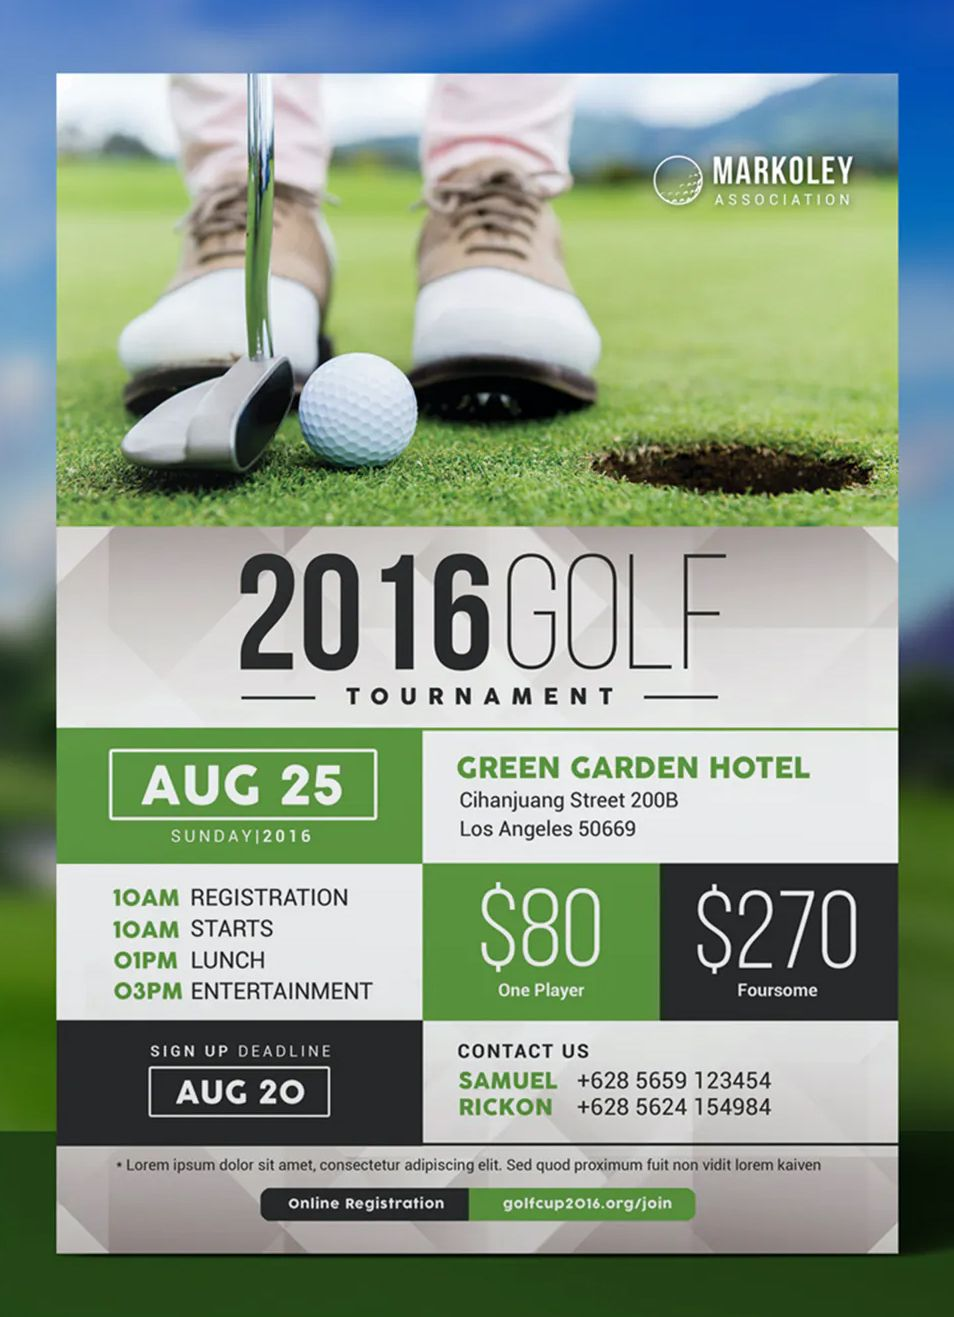 Charity Golf Tournament Flyer By Aarleykaiven On Envato Elements In 2021 Event Flyer Templates Event Flyer Golf Tournament